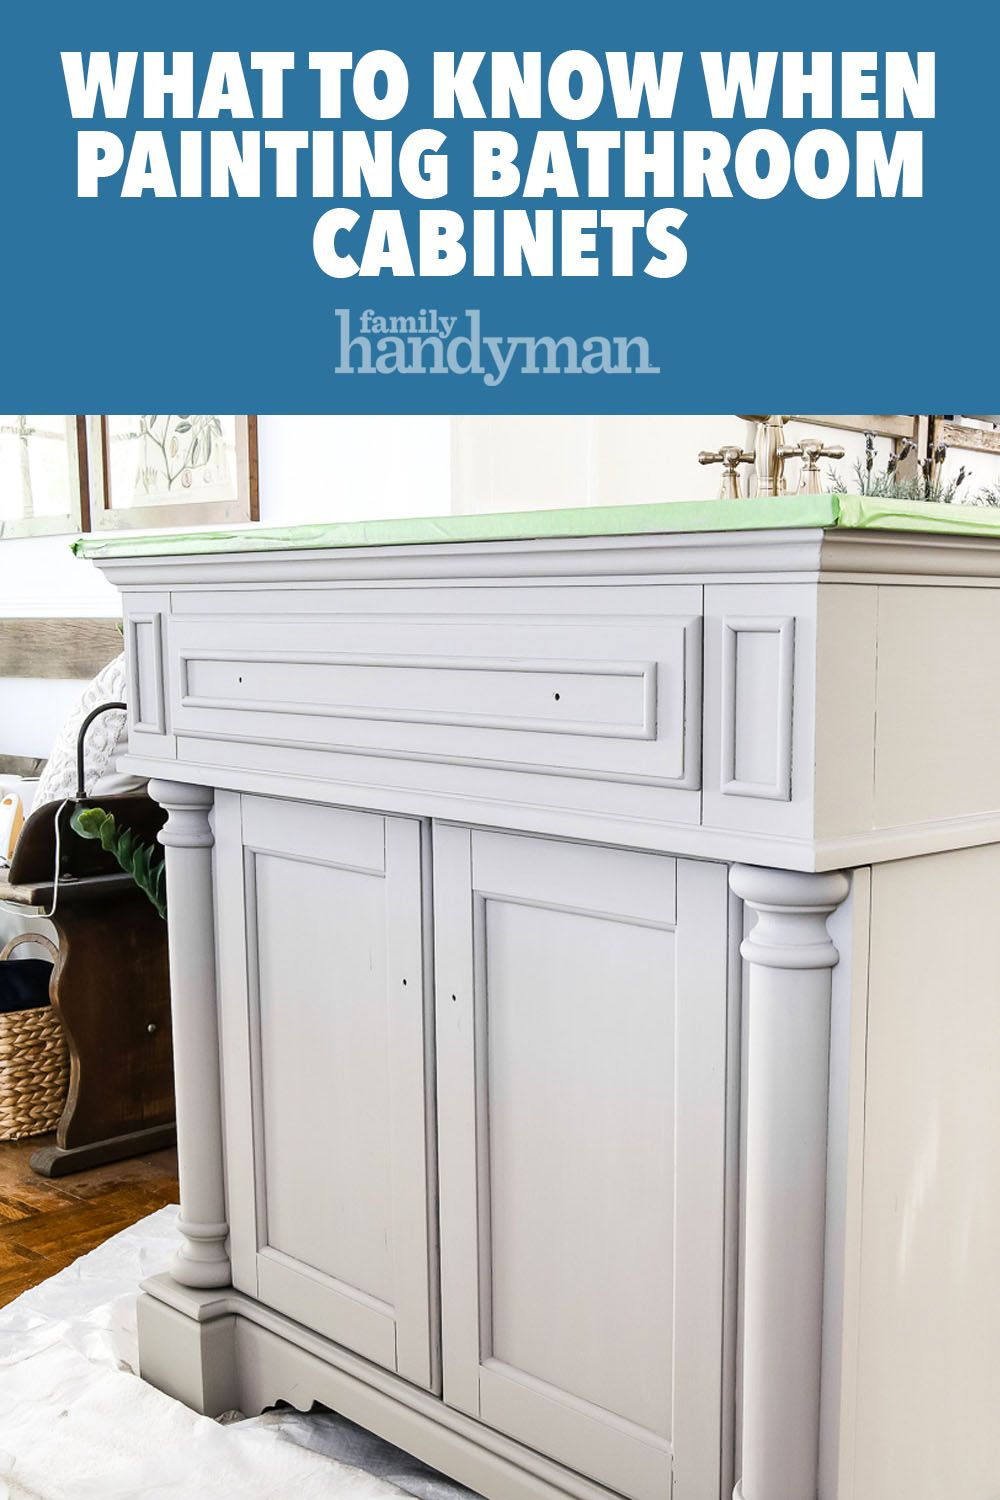 What to Know When Painting Bathroom Cabinets | Painting ...